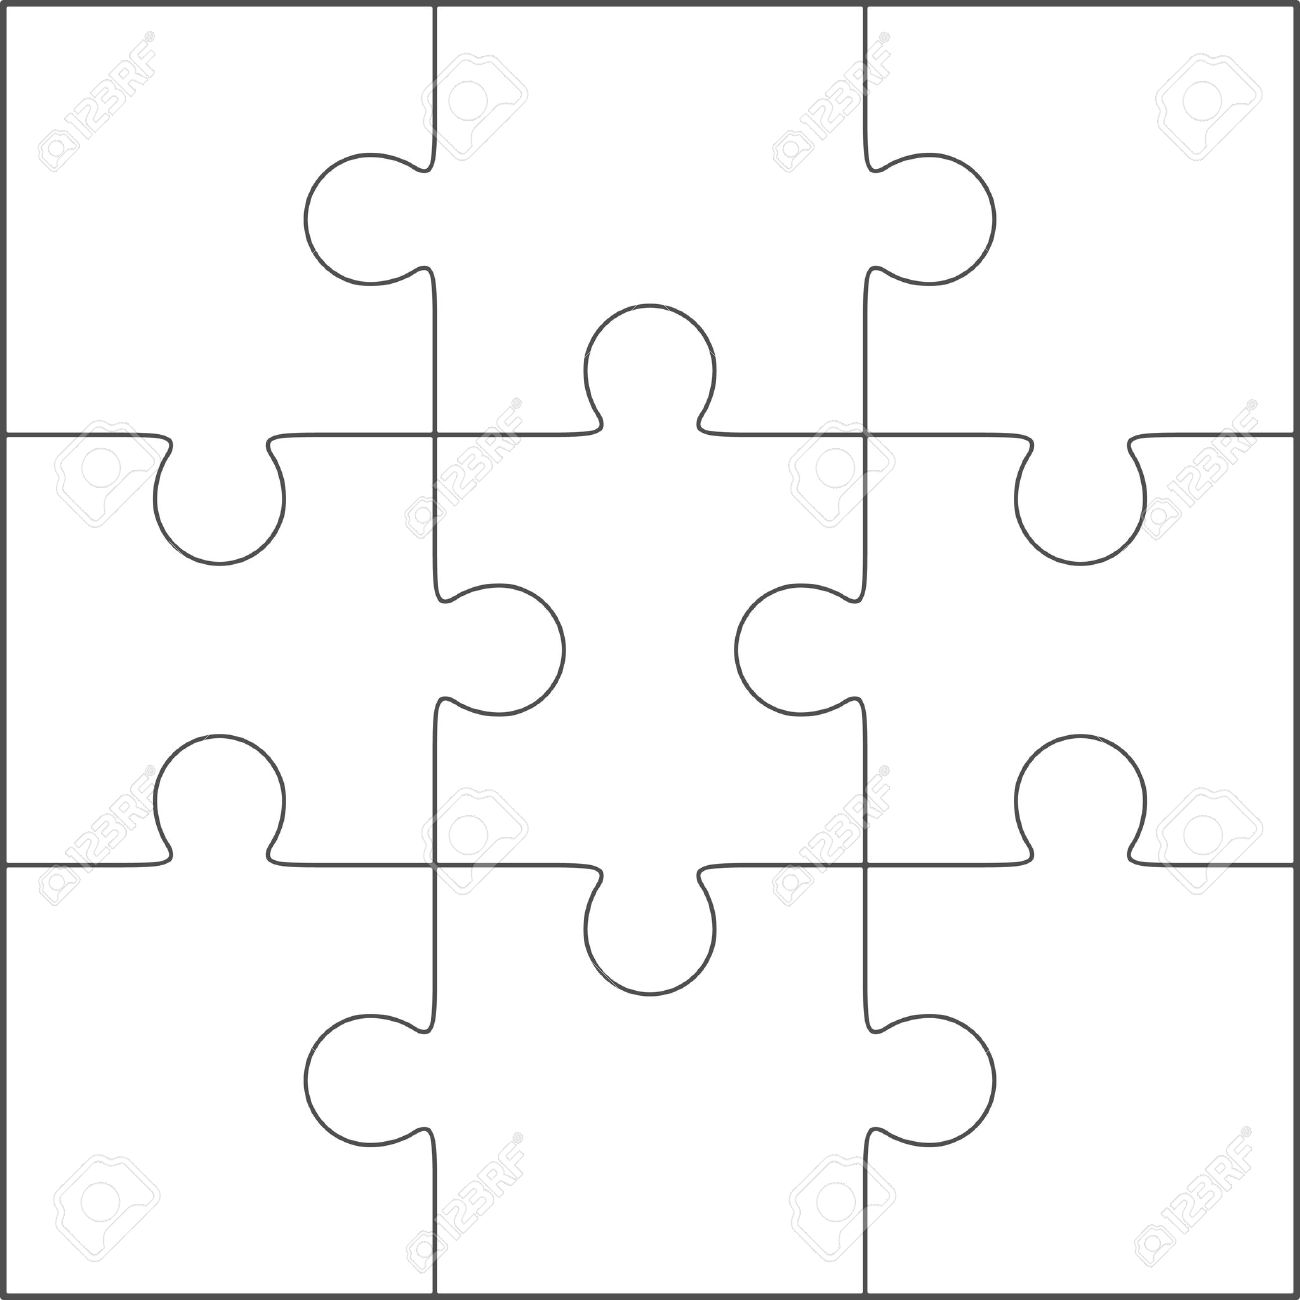 Jigsaw Puzzle Vector Blank Simple Template 3x3 Royalty Free